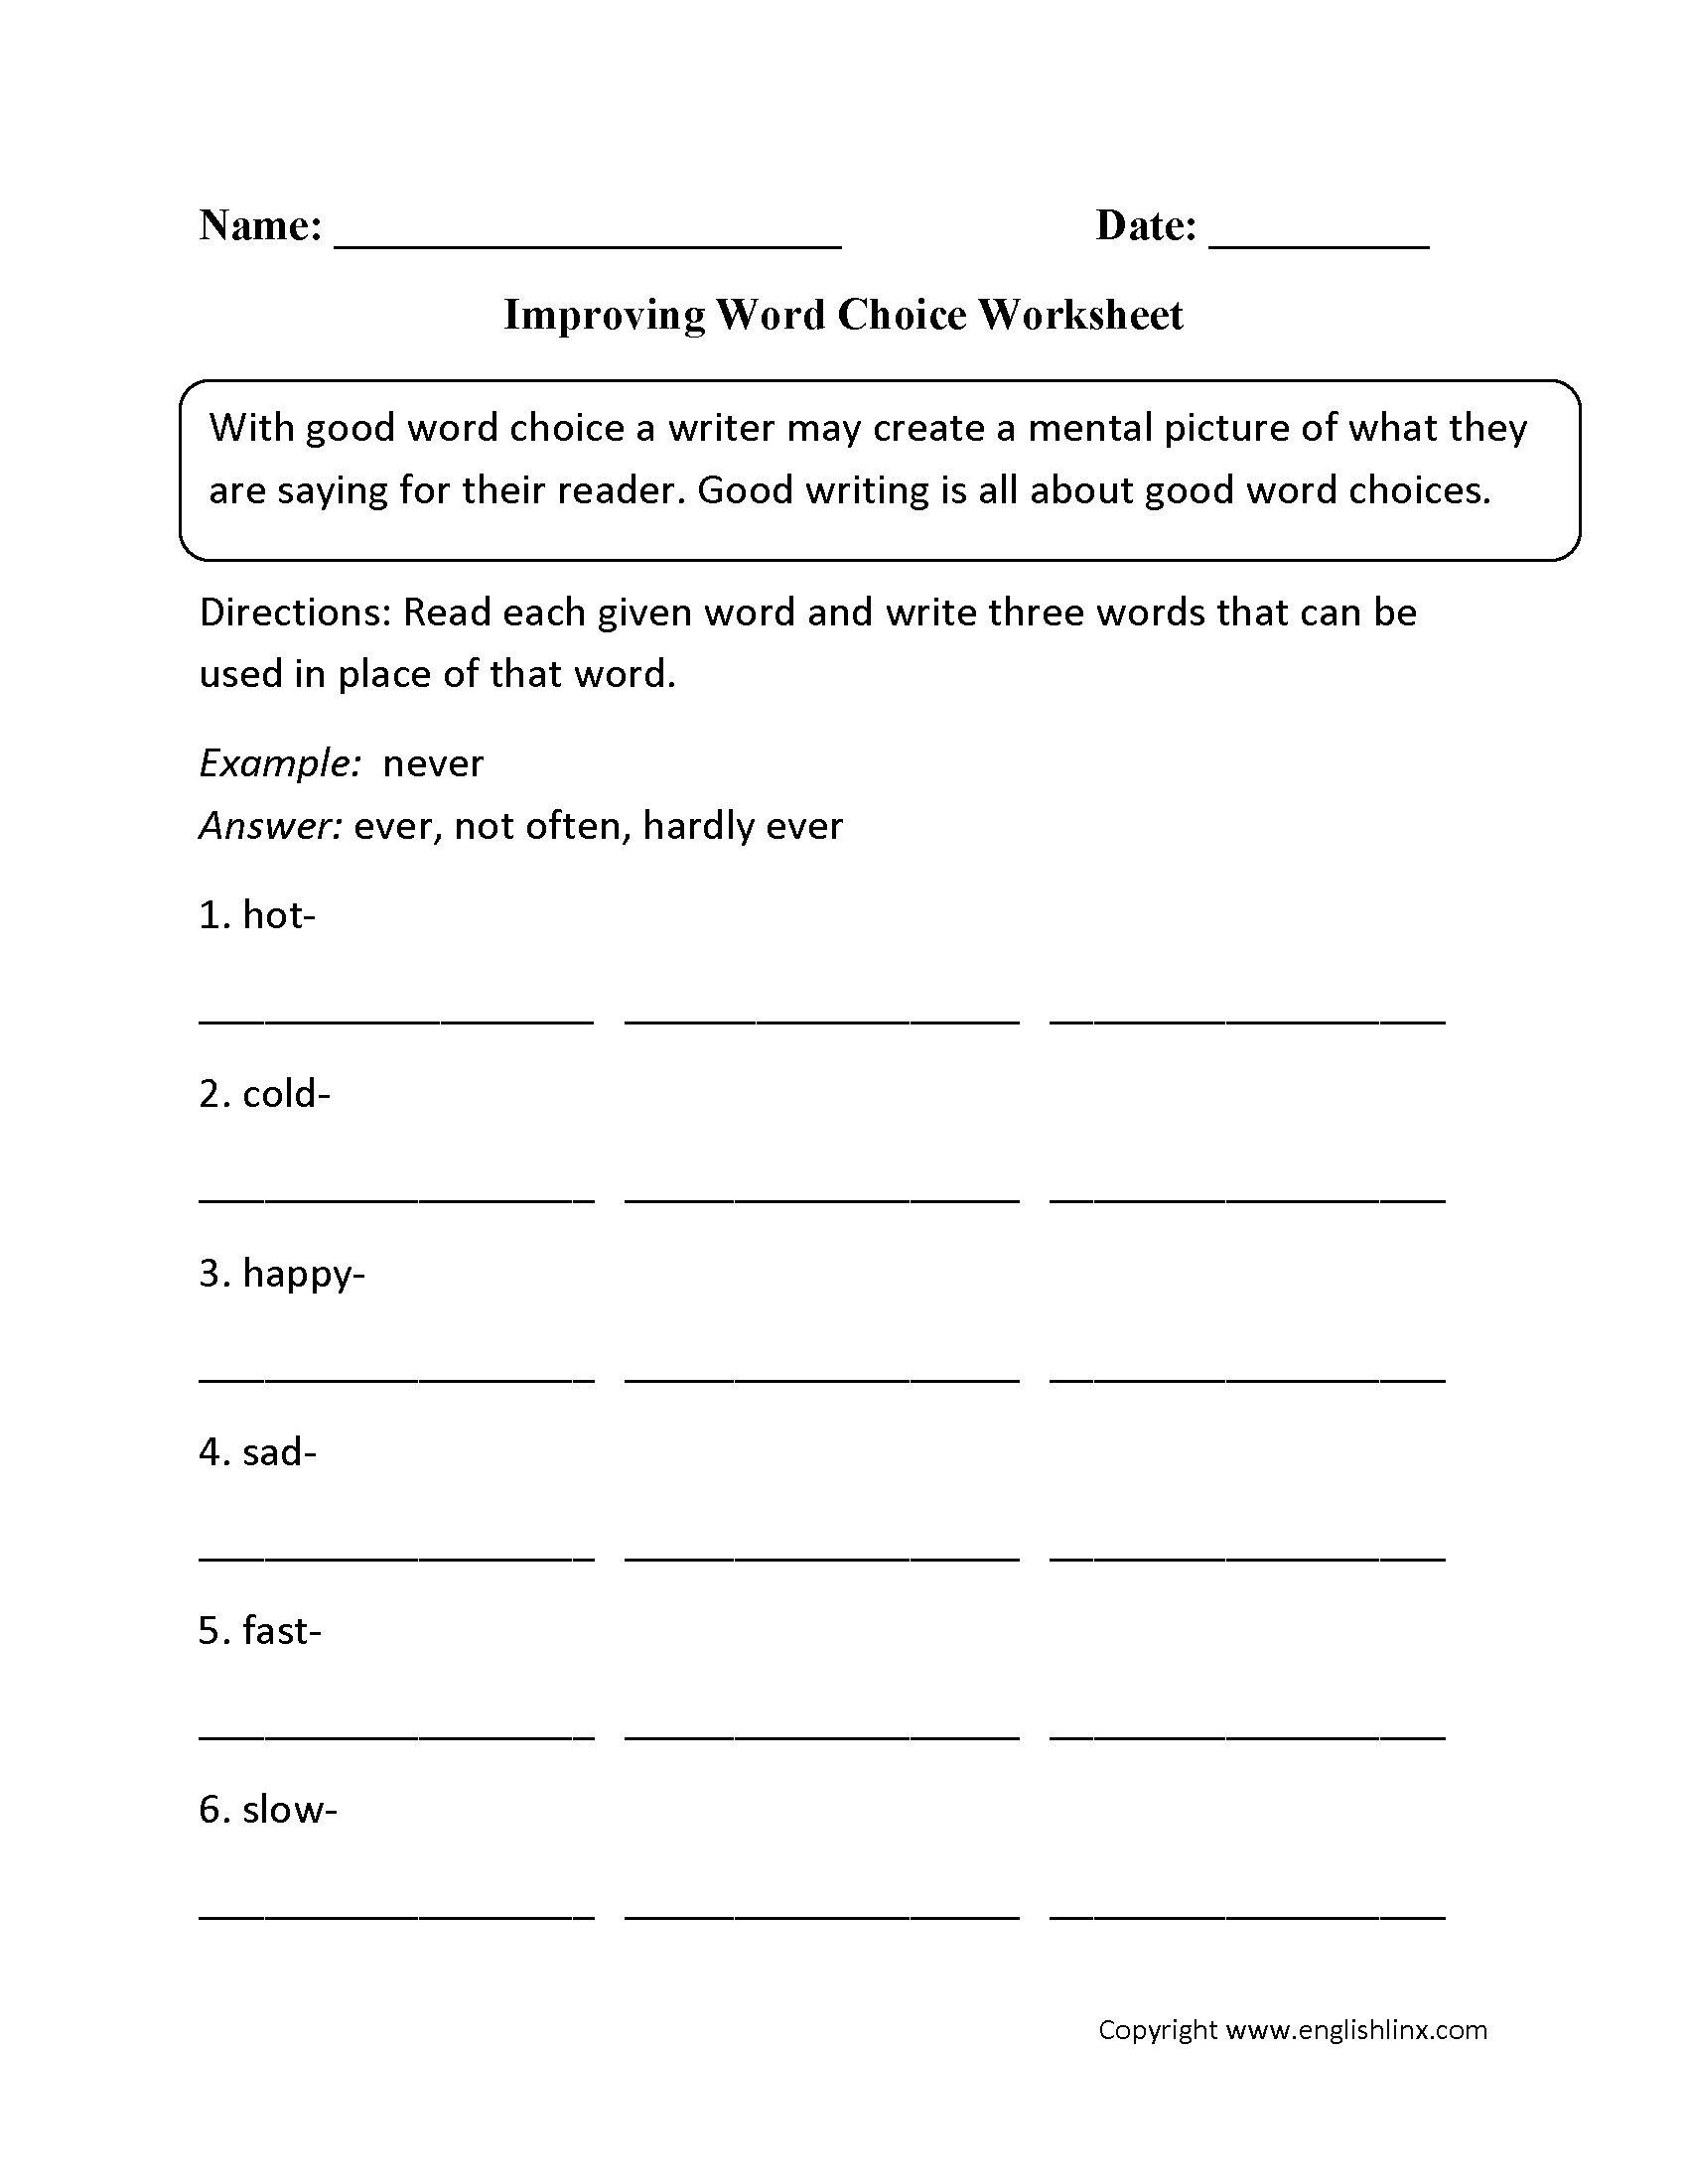 Worksheets Grammar Mechanics Worksheets improving word choice worksheet critical thinking pinterest worksheet